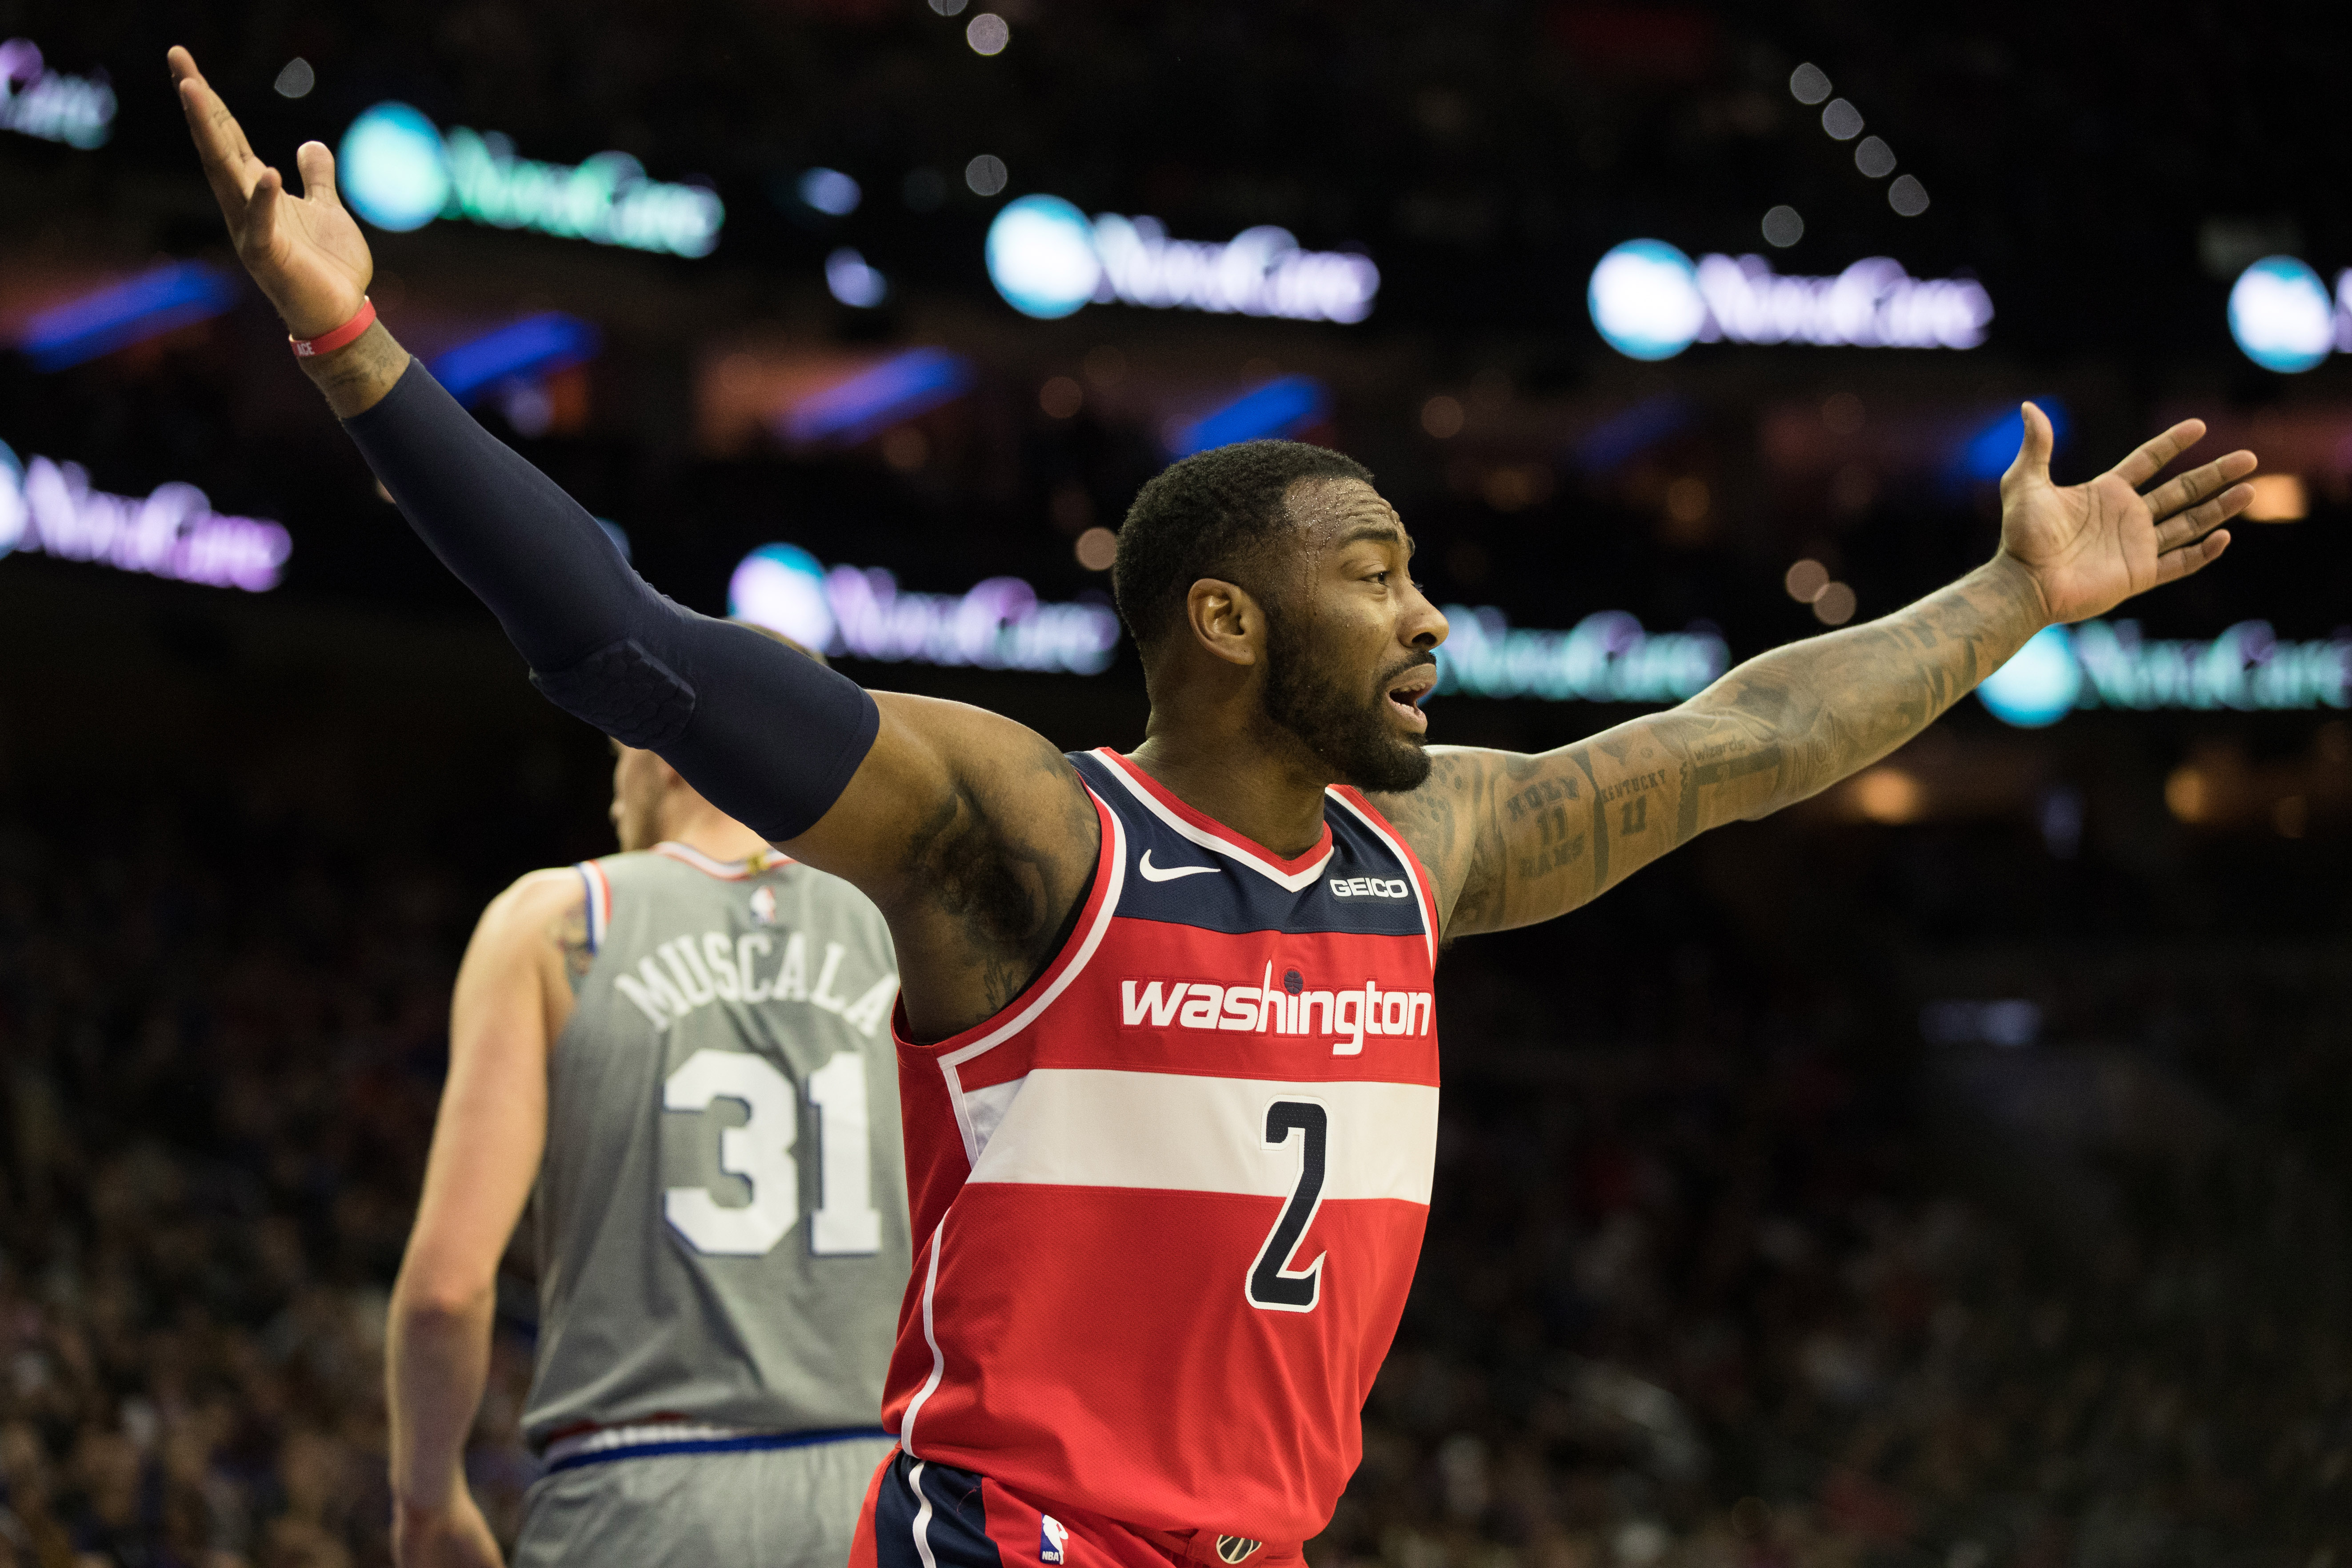 John Wall says he has 'no respect' for officials and Bradley Beal understands why